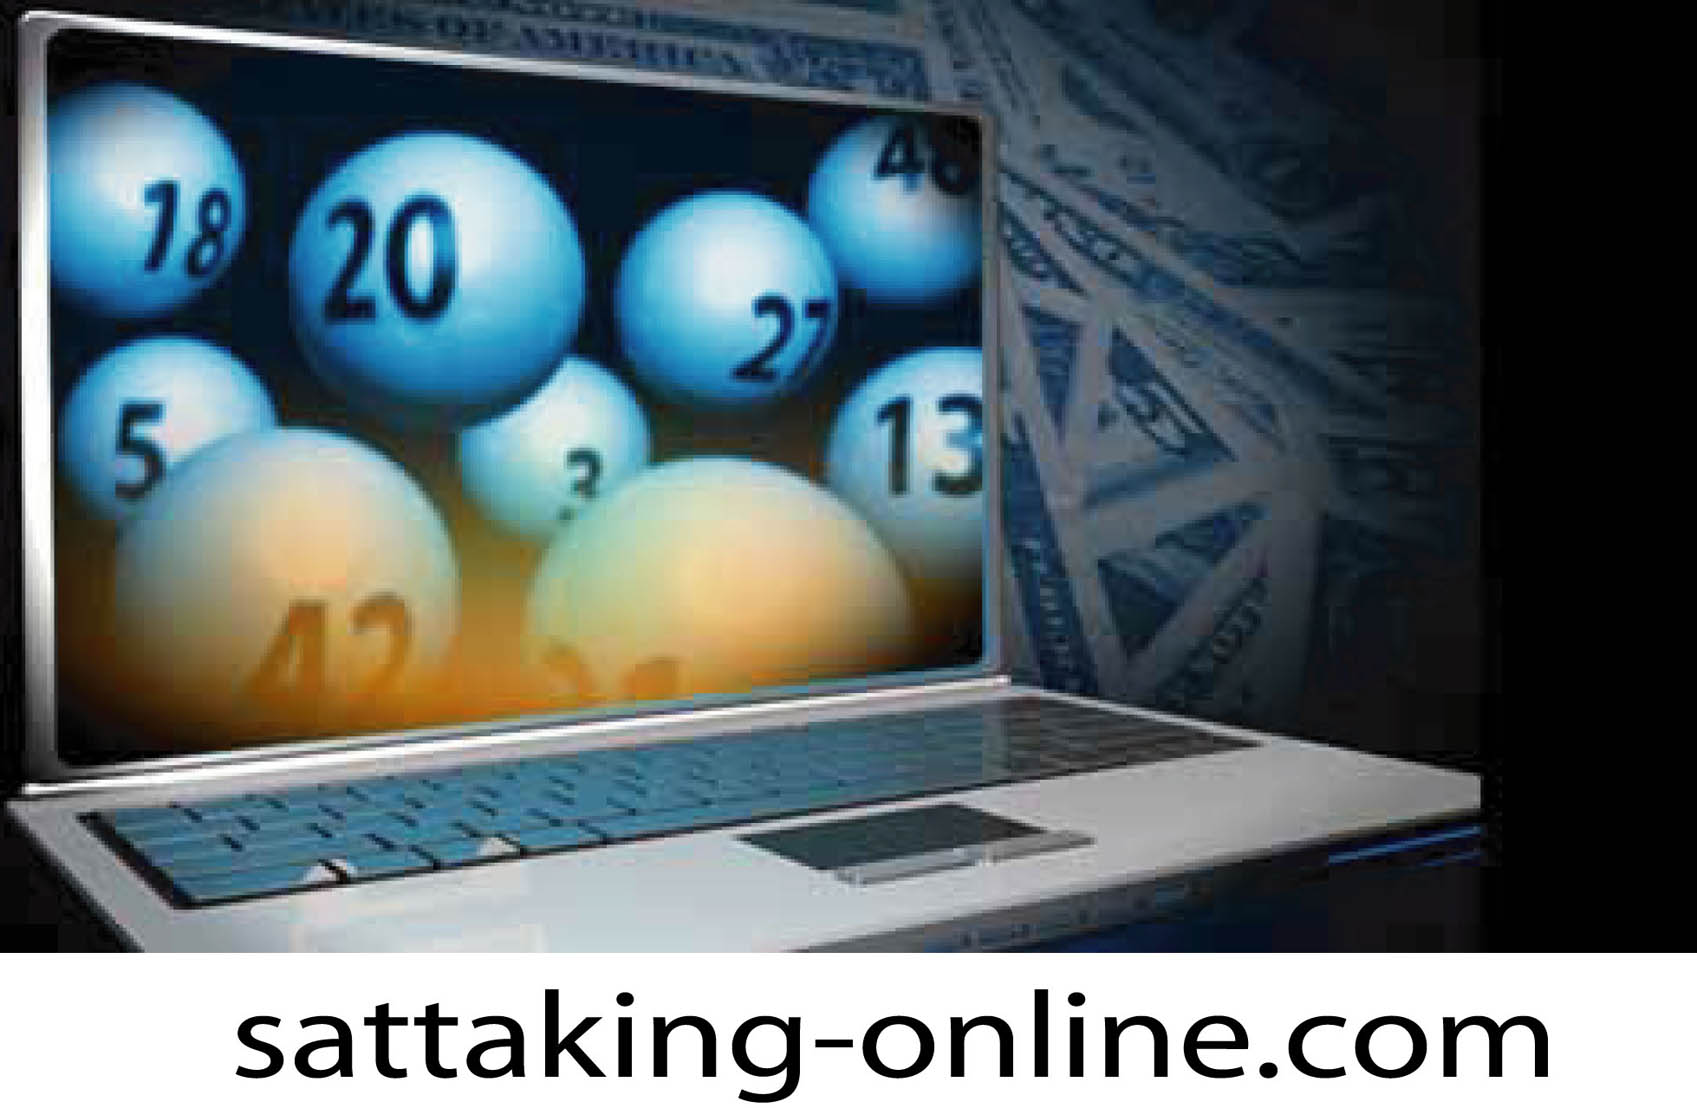 Step by step instructions to Find the Best SattaKing Online Lottery Gambling